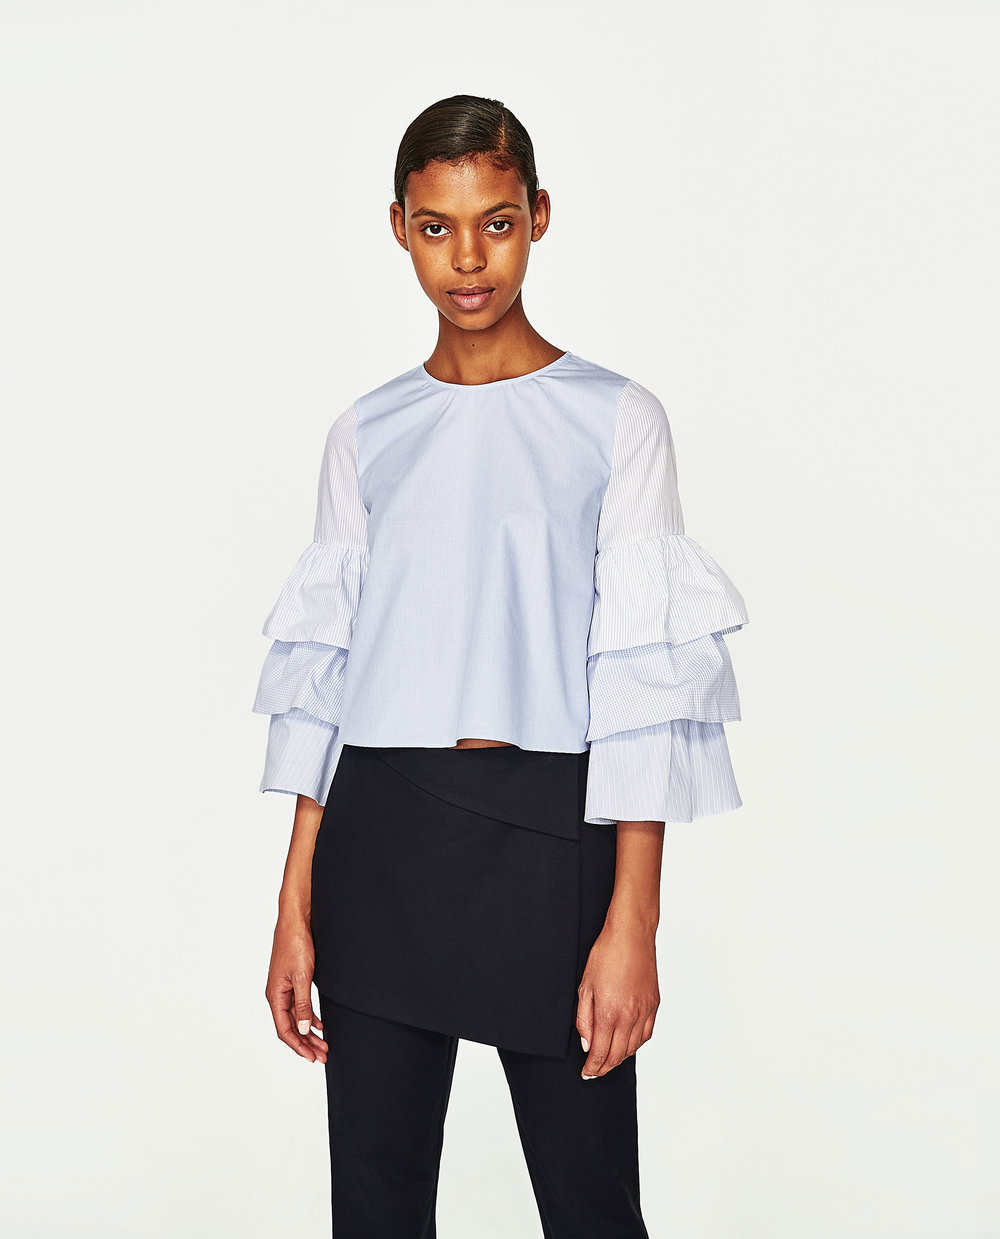 Zara - Top with Ruffles $39.90